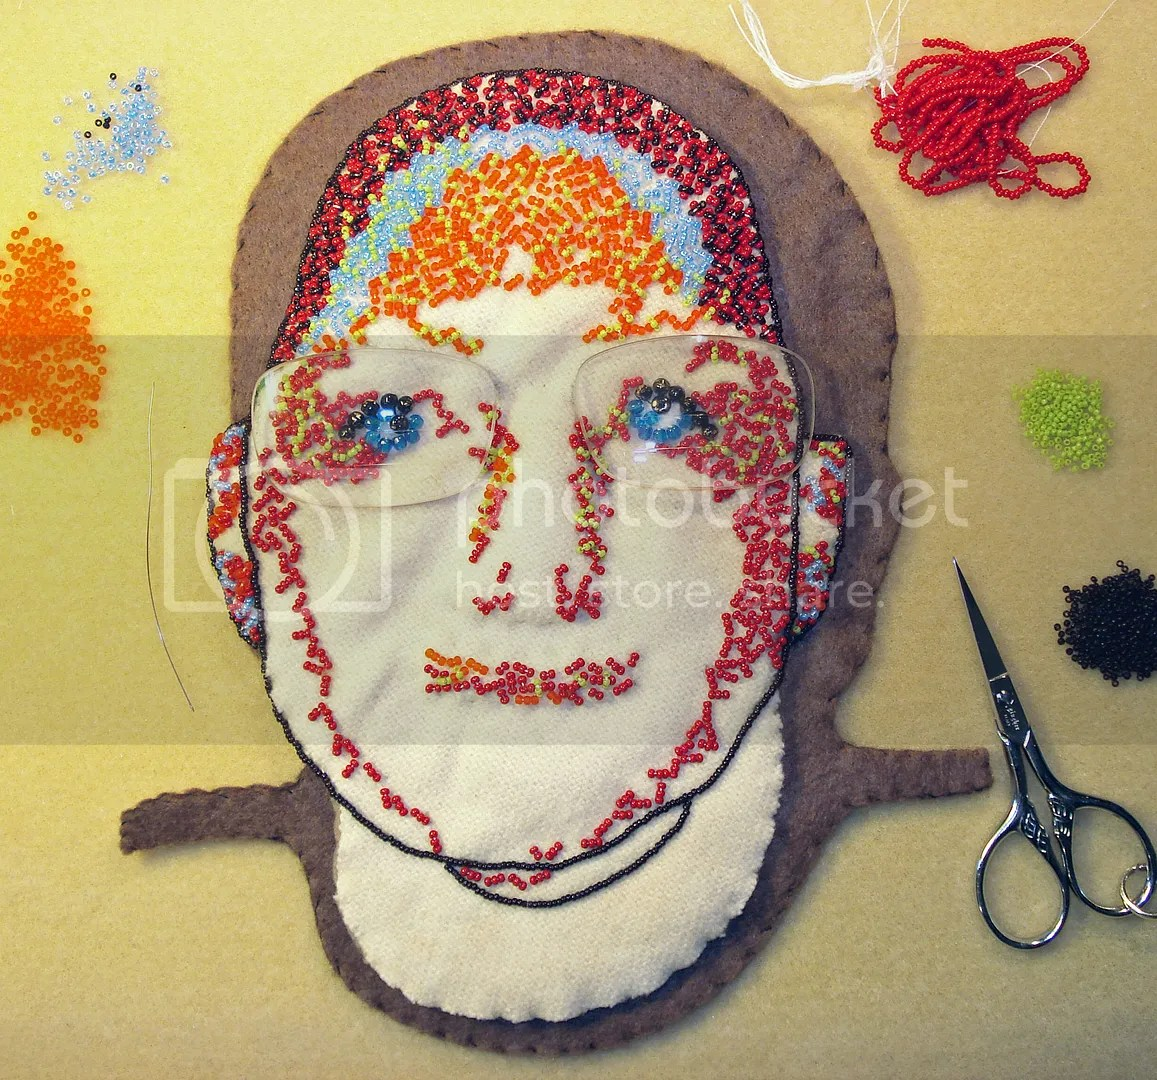 beadwork beaded portrait bead embroidery recycled eyeglass lenses mixed media fiber art